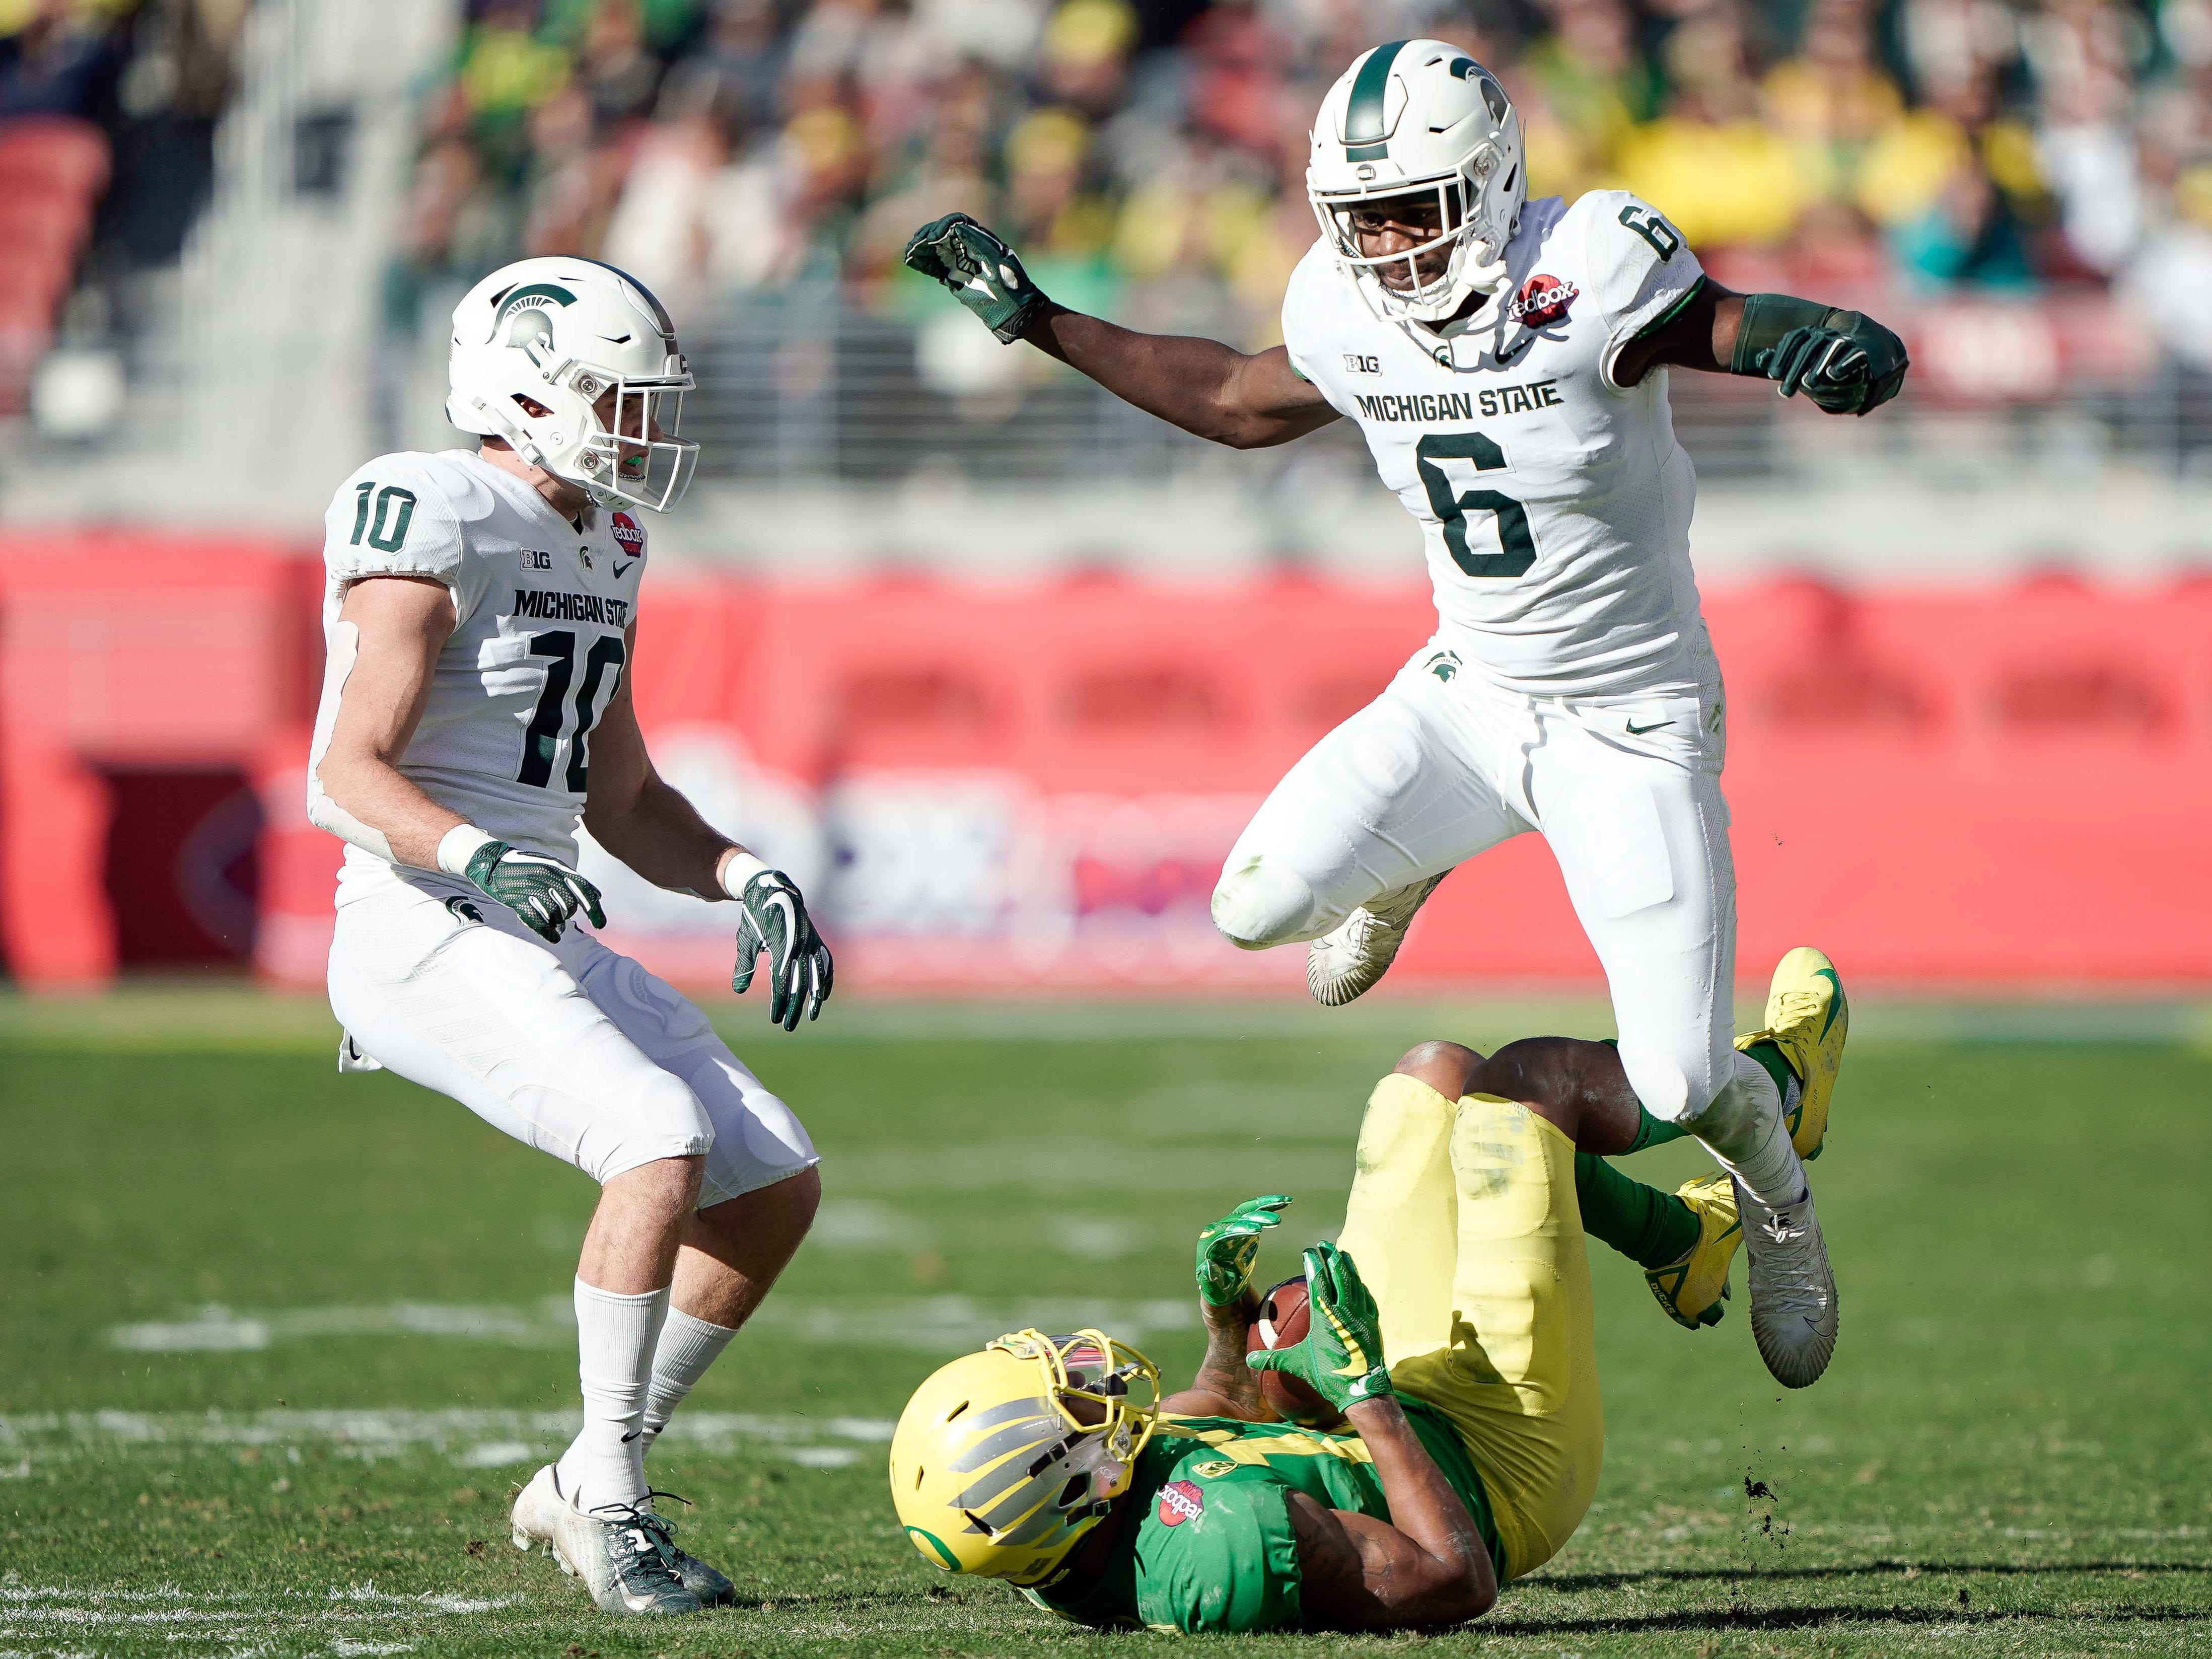 Michigan State Spartans safety David Dowell (6) leaps over Oregon Ducks wide receiver Dillon Mitchell (13) near safety Matt Morrissey (10) during the second quarter at Levi's Stadium.